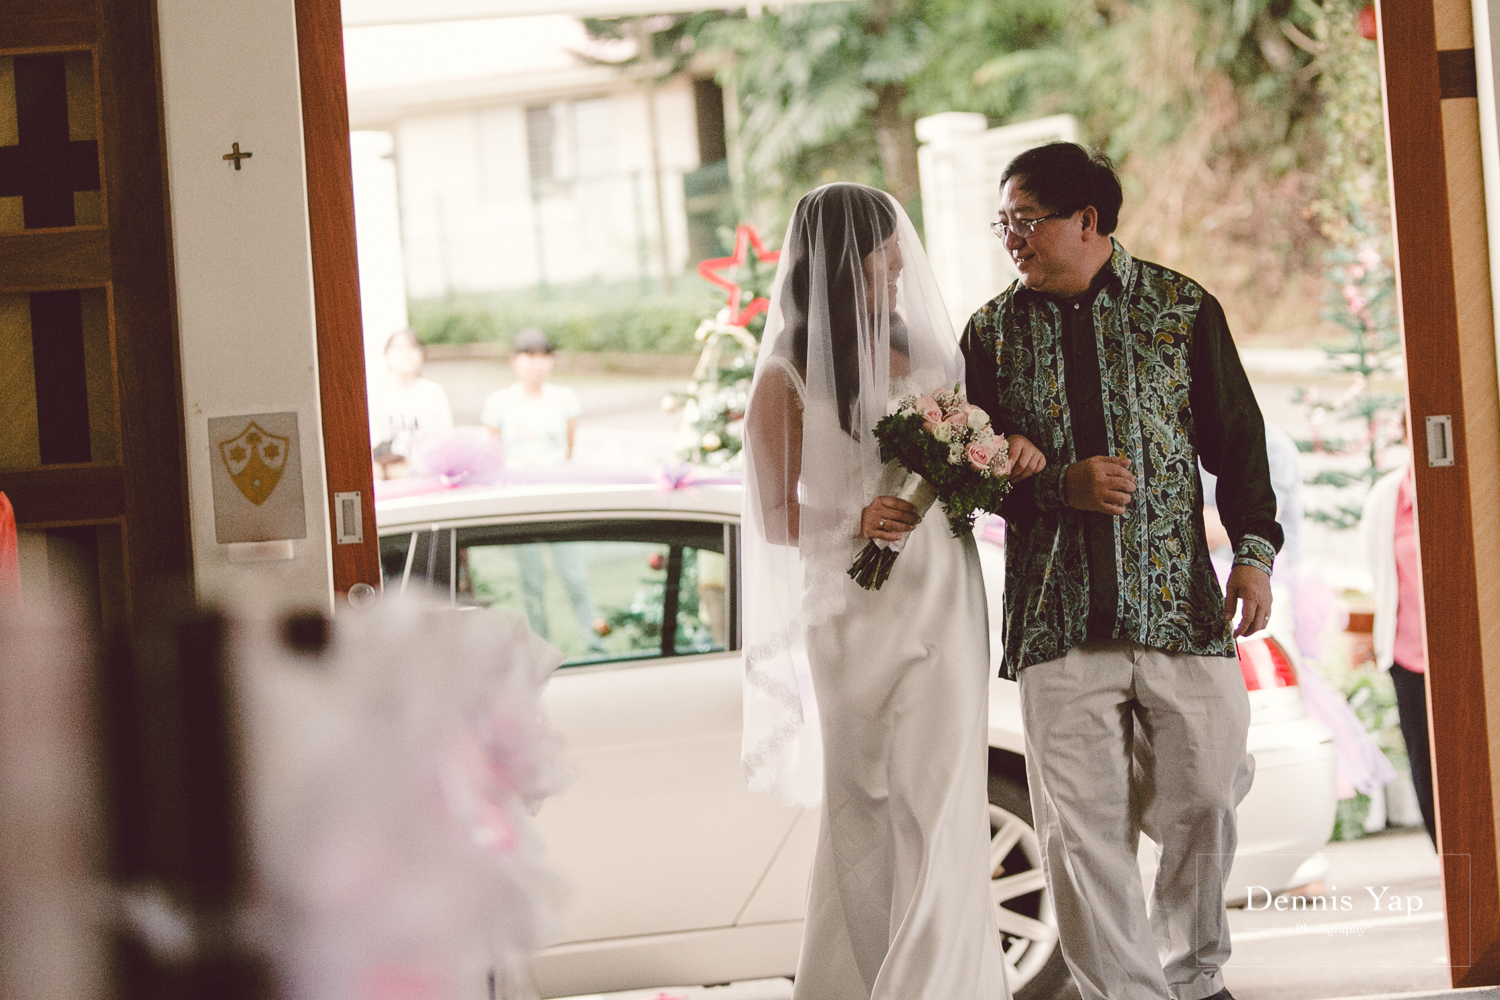 kurt eunice wedding day in cameron highlands resort dennis yap photography small wedding-16.jpg